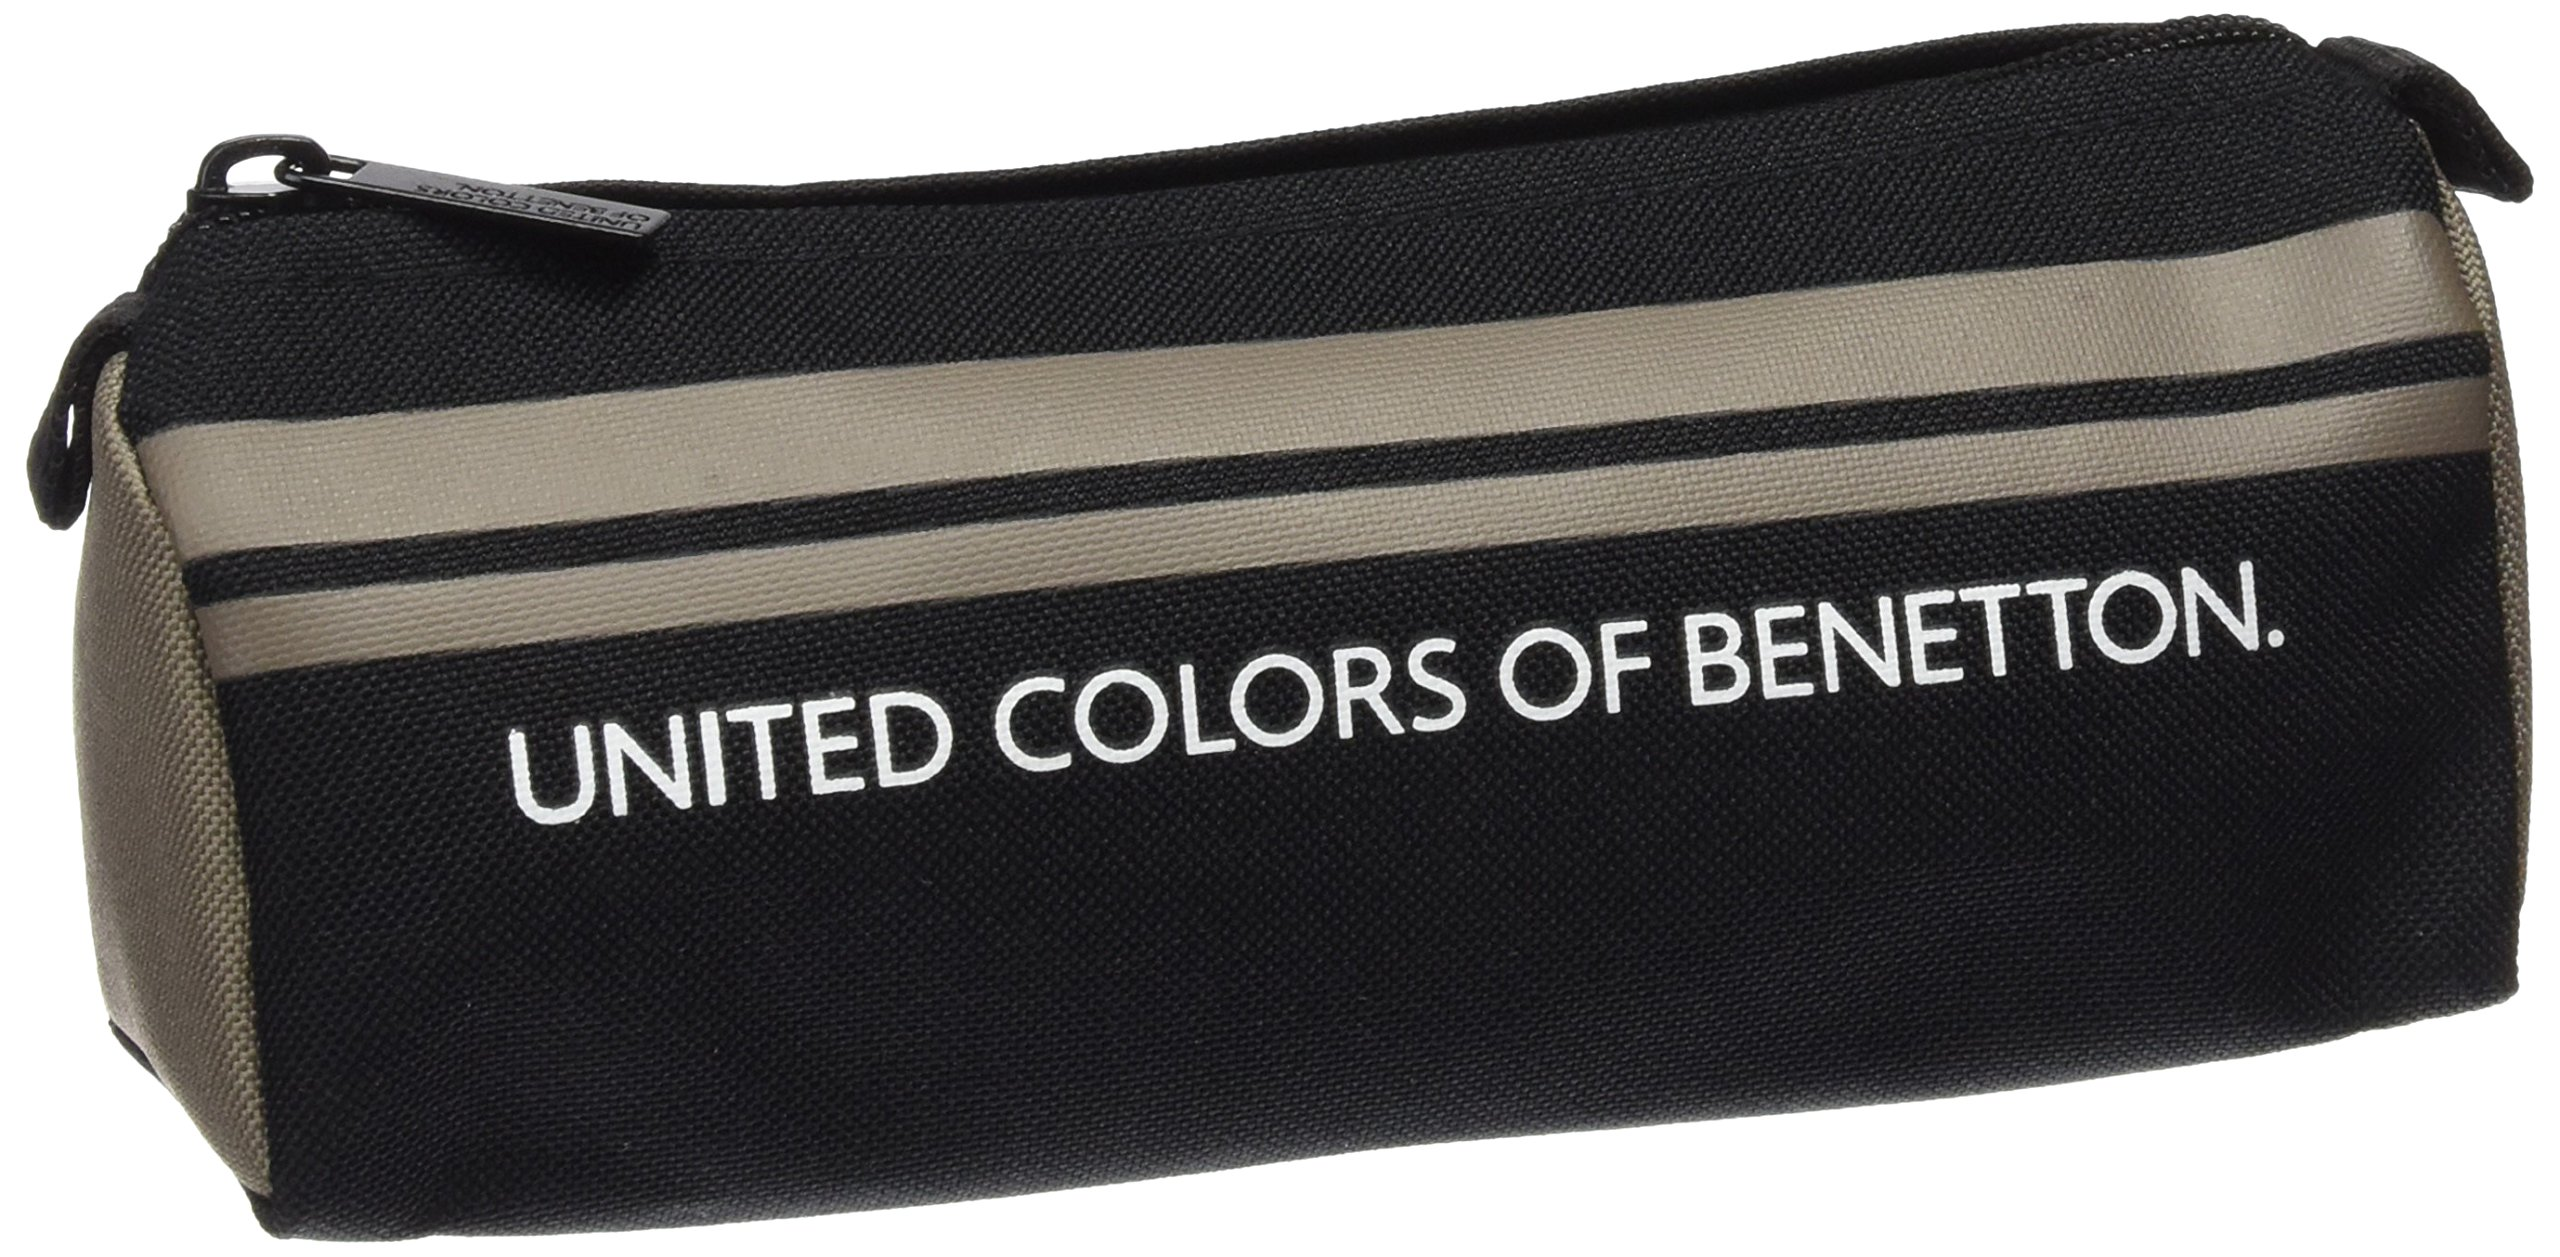 United Colors Of Benetton- Benetton Estuche portatodo Lleno 17 Piezas, Color Negro (SAFTA 811606708)